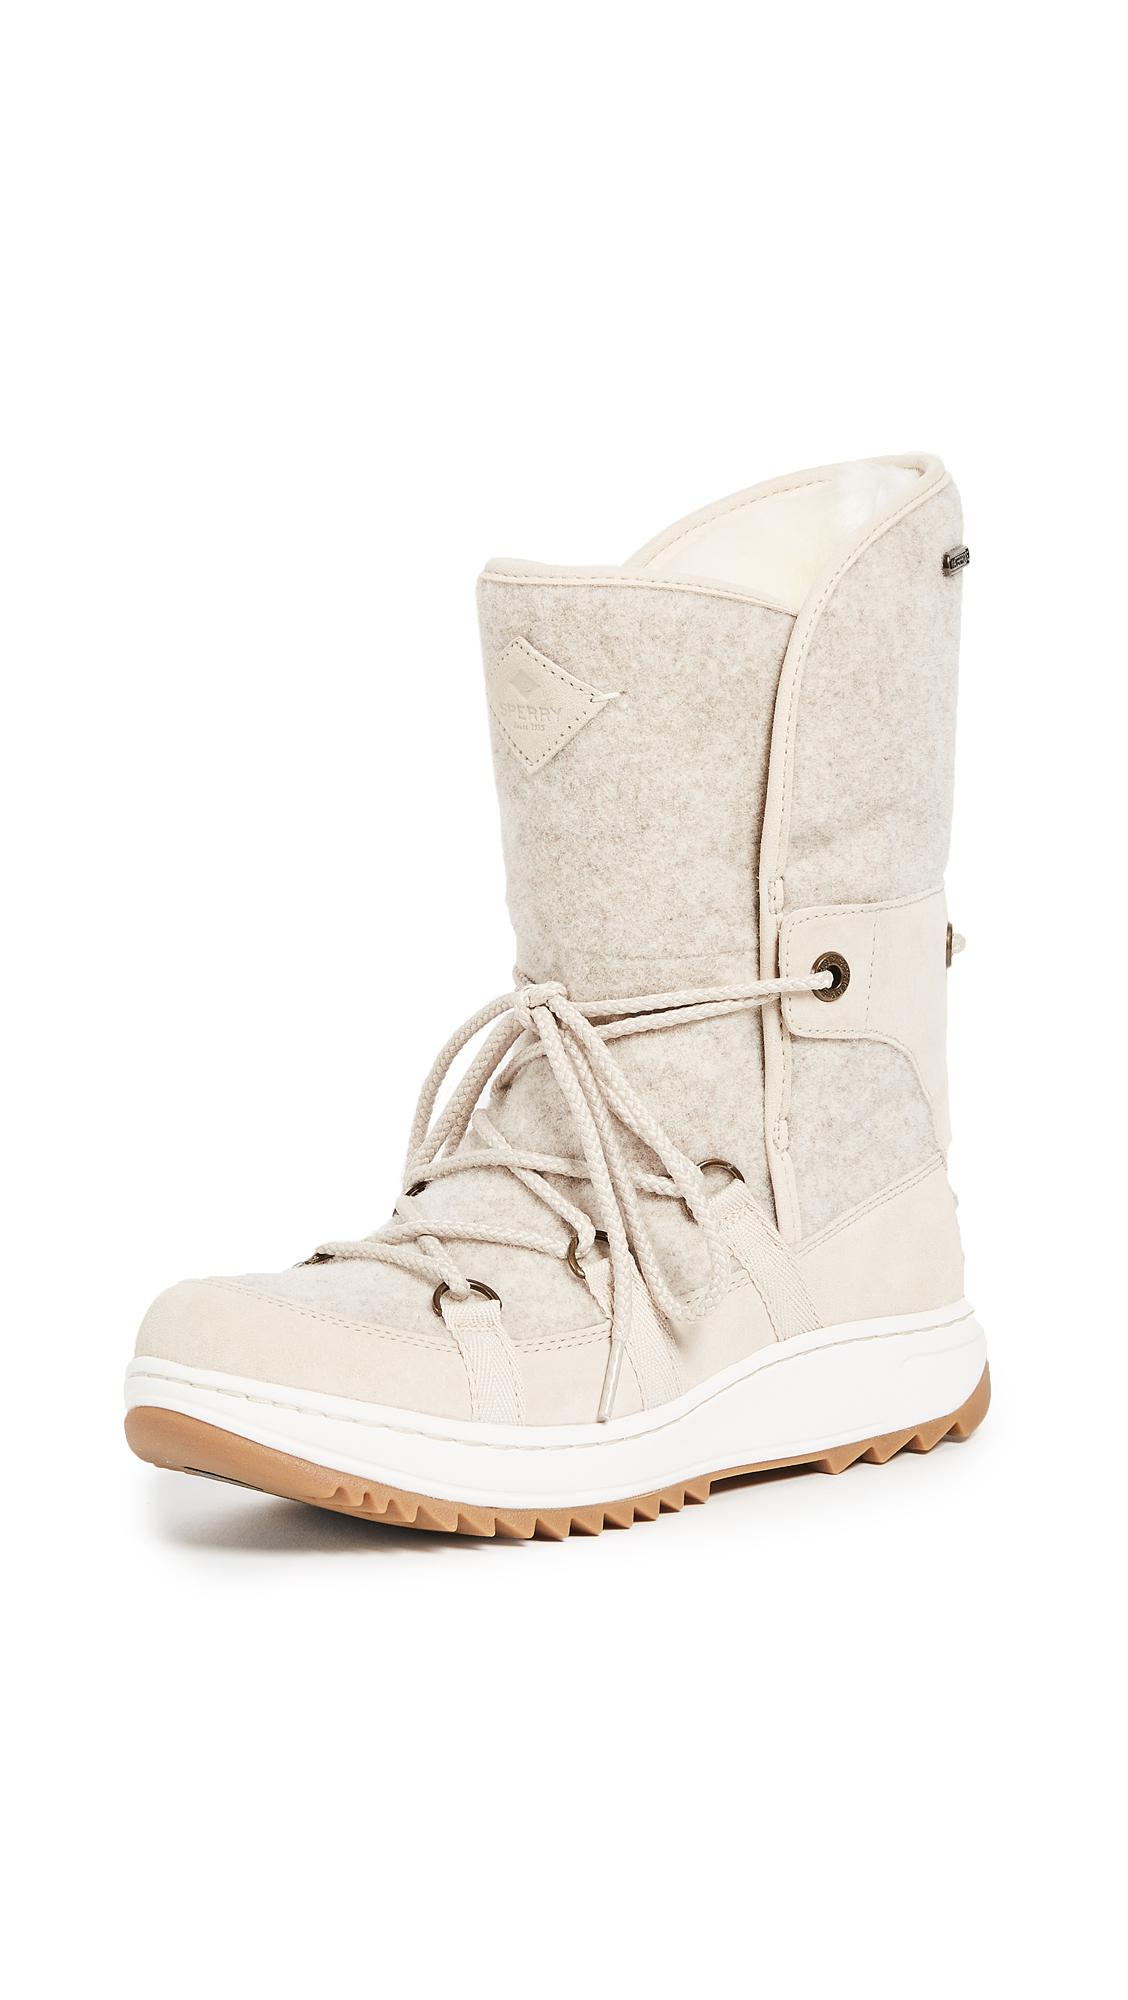 Lyst Sperry Top Sider Powder Ice Cap Boots In White